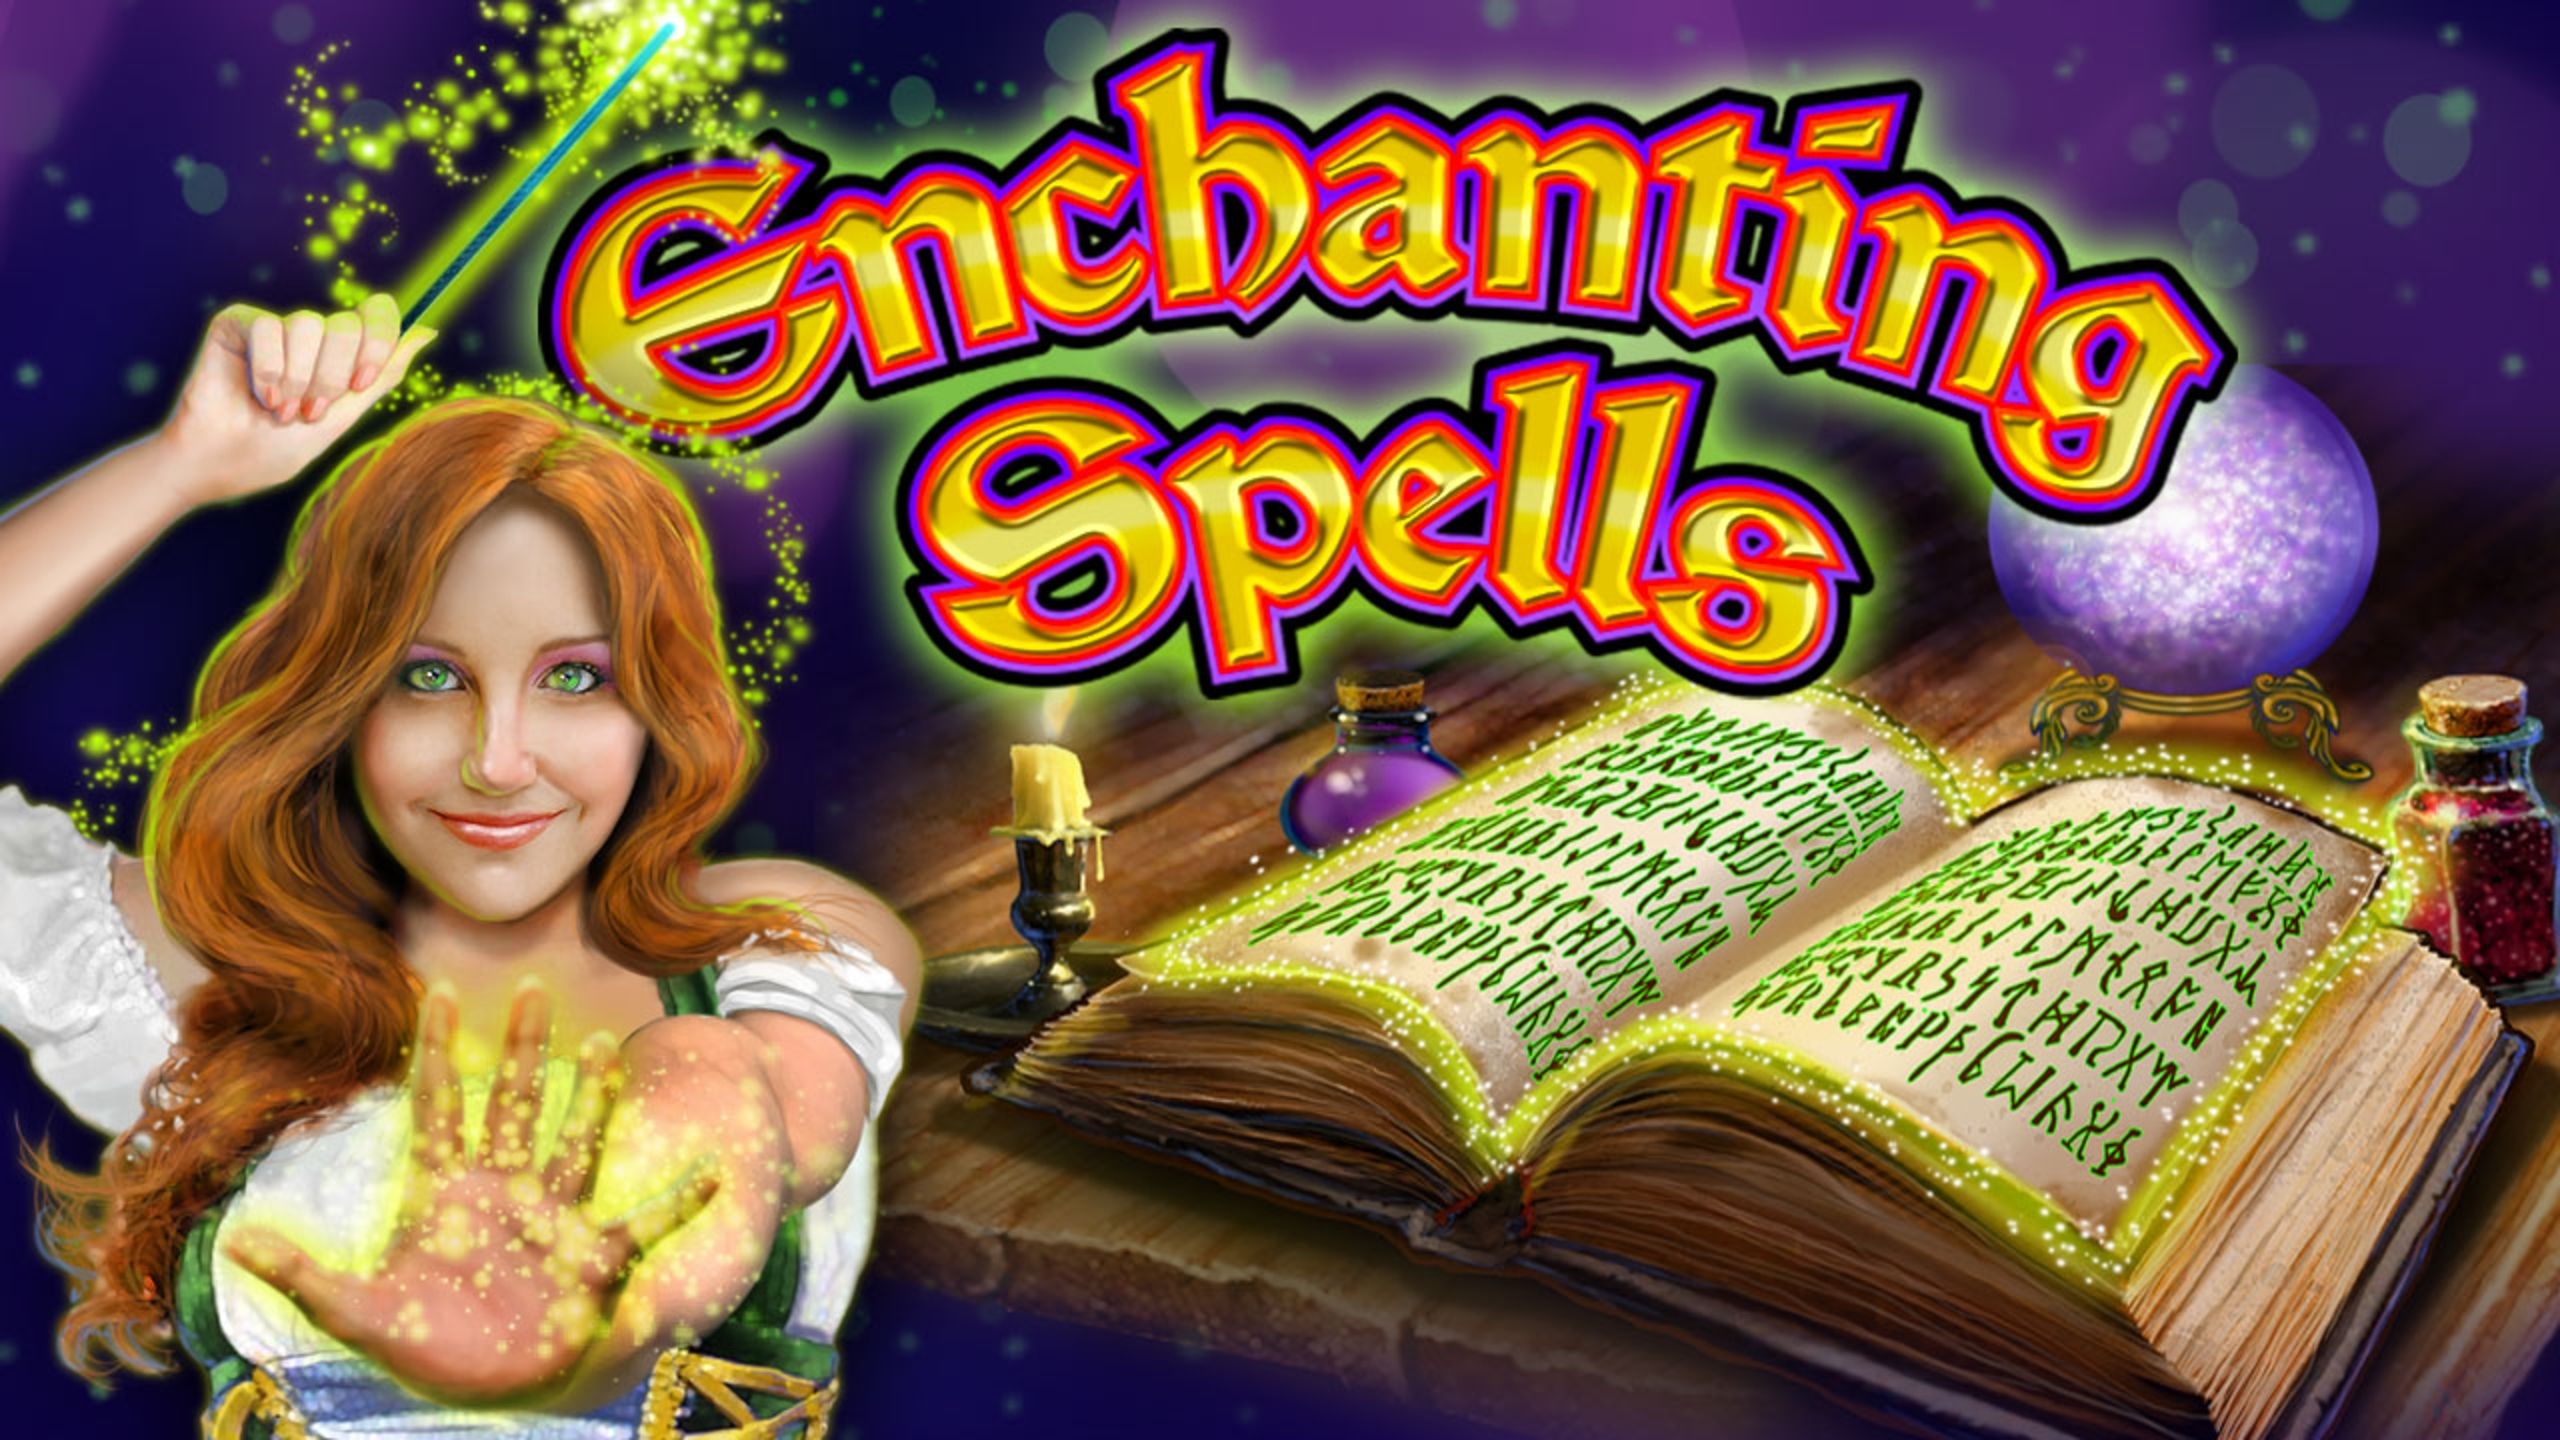 The Enchanting Spells Online Slot Demo Game by 2 By 2 Gaming